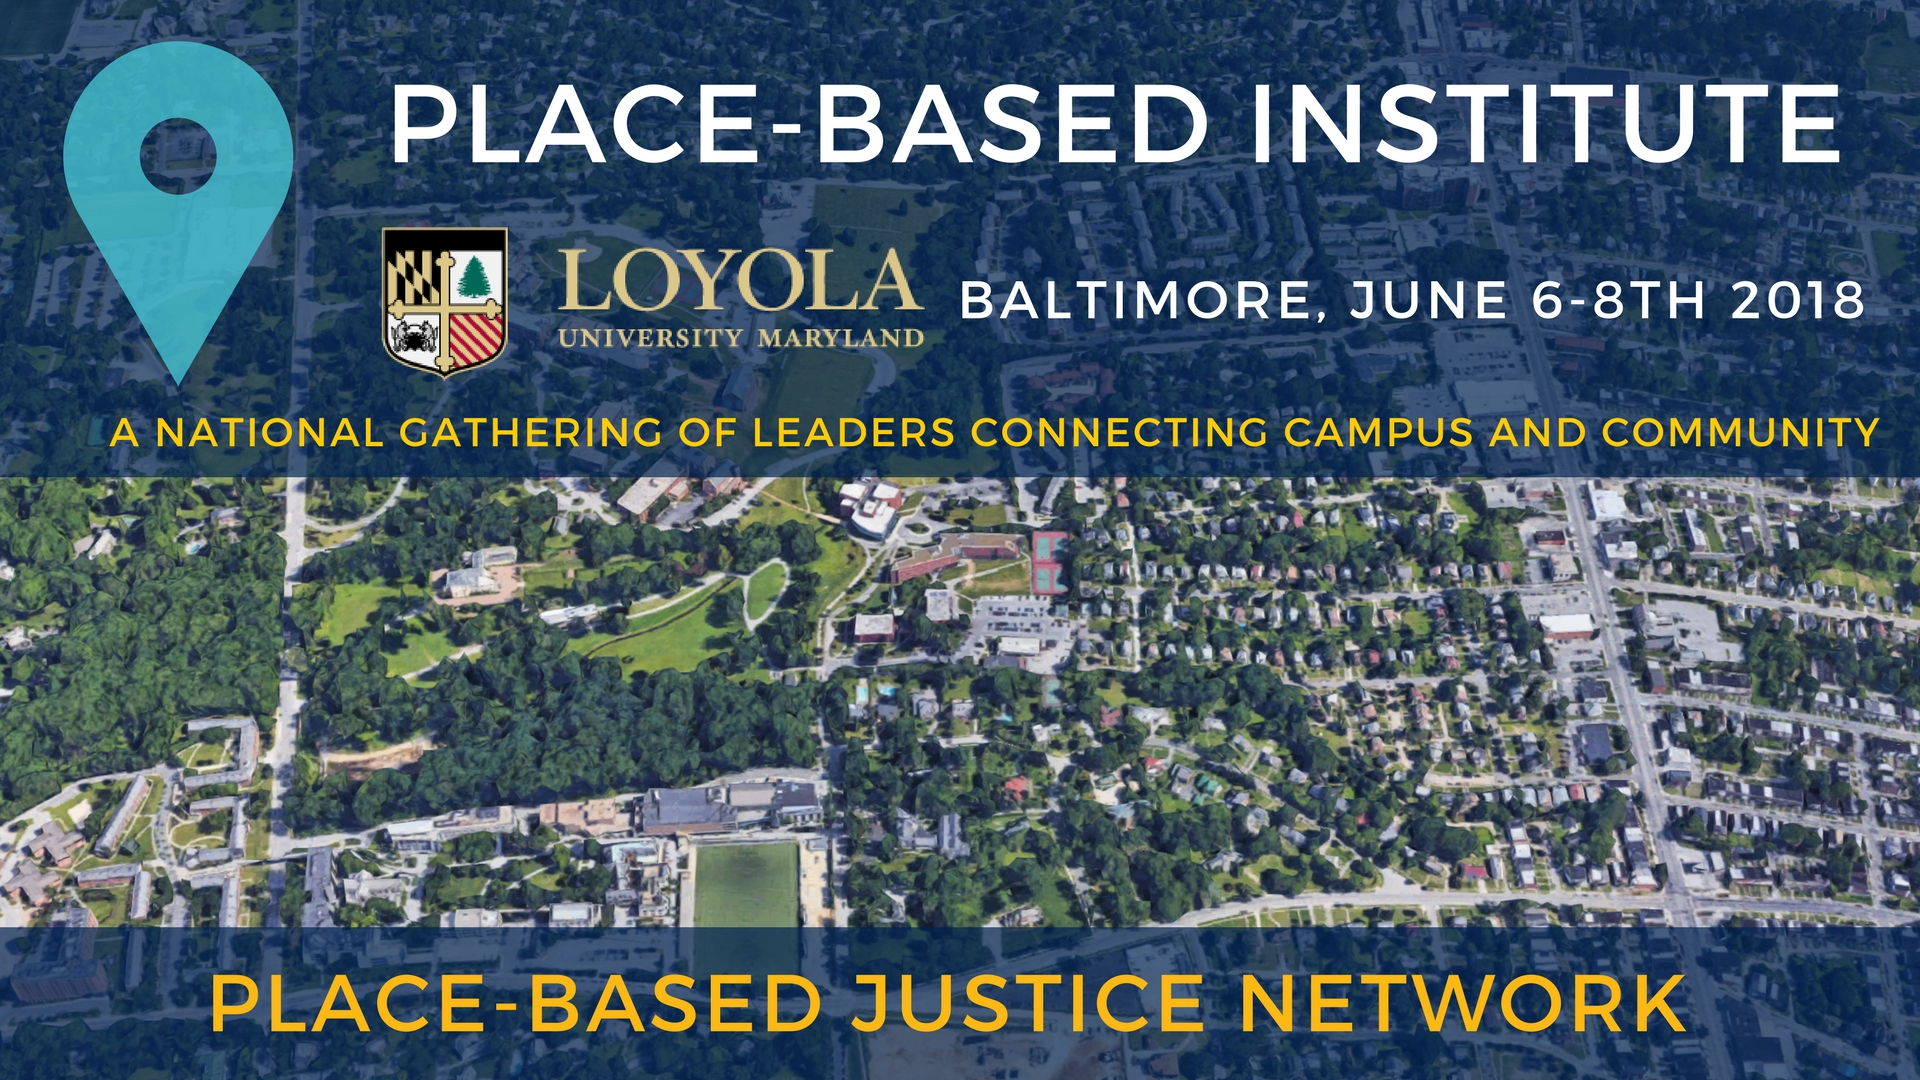 Place-Based Justice Network Summer Institute 2018 - Loyola University Maryland